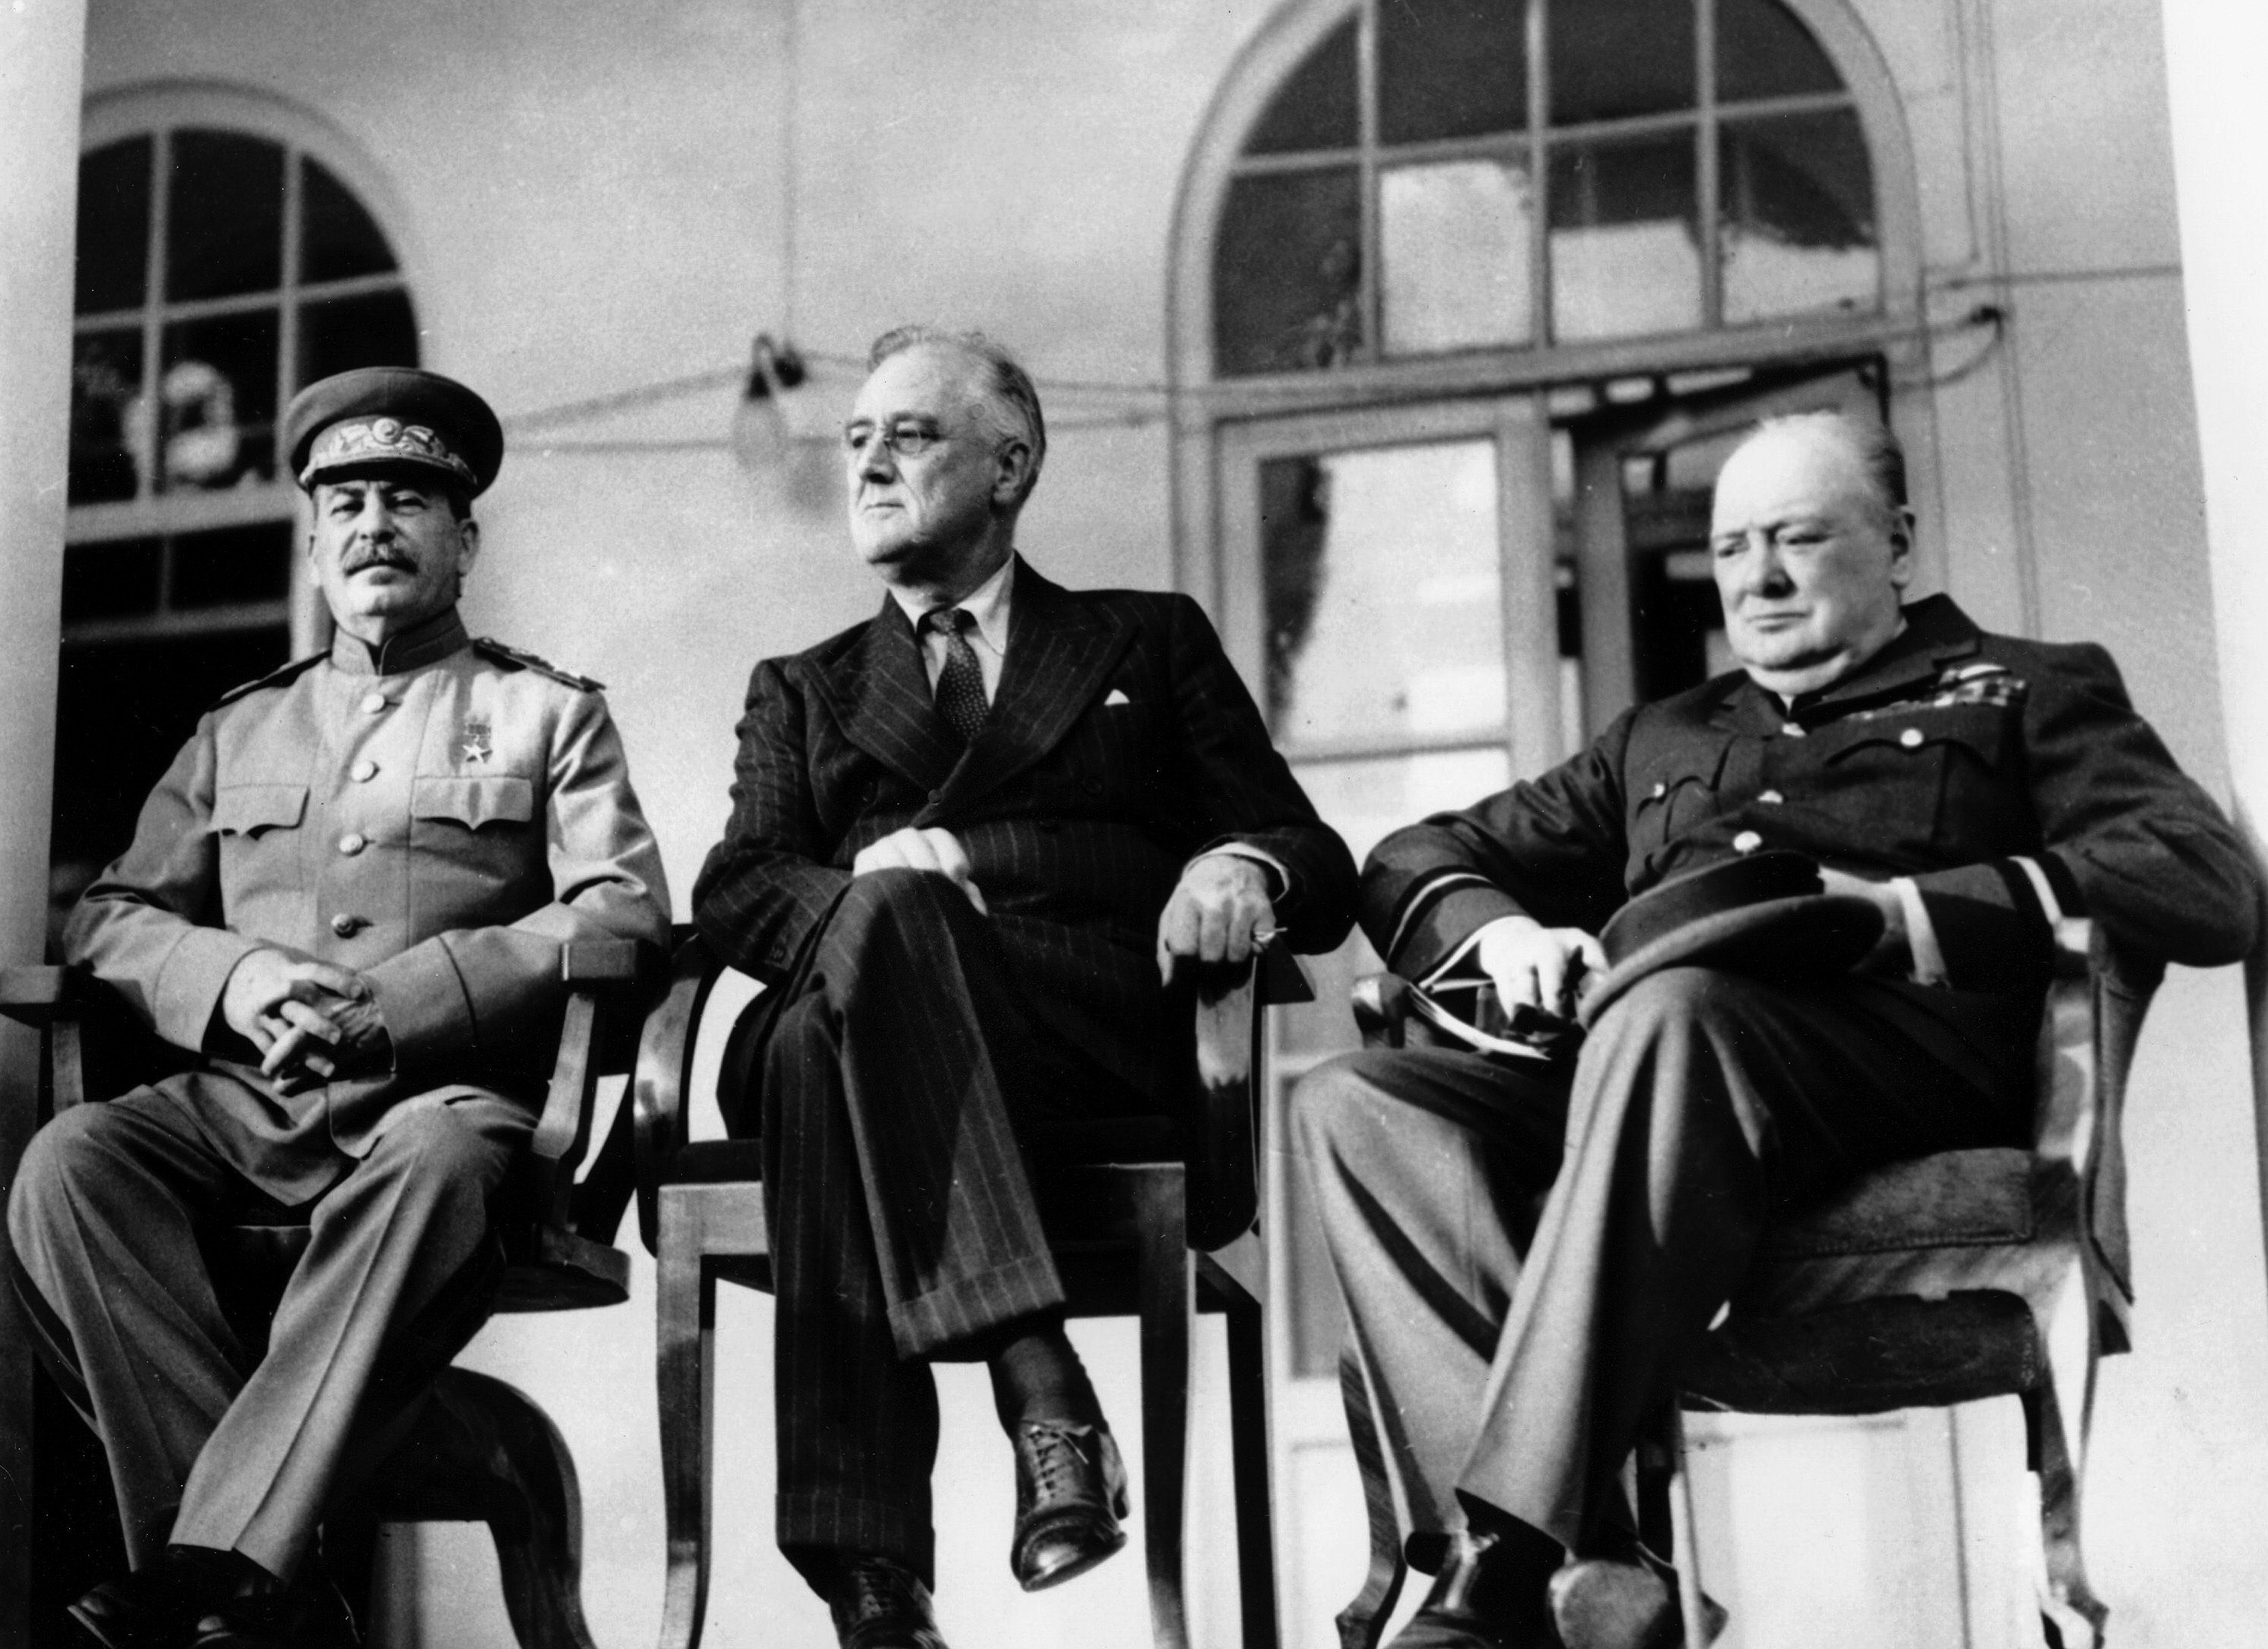 Soviet Union Premier Josef Stalin, U.S. President Franklin D. Roosevelt, center, and British Prime Minister Winston Churchill sit at the Teheran Conference in the capital of Persia, Iran, on Nov. 28, 1943. The three leaders, meeting for the first time, are to discuss Allied plans for the war against Germany and for postwar cooperation in the United Nations. (AP Photo)